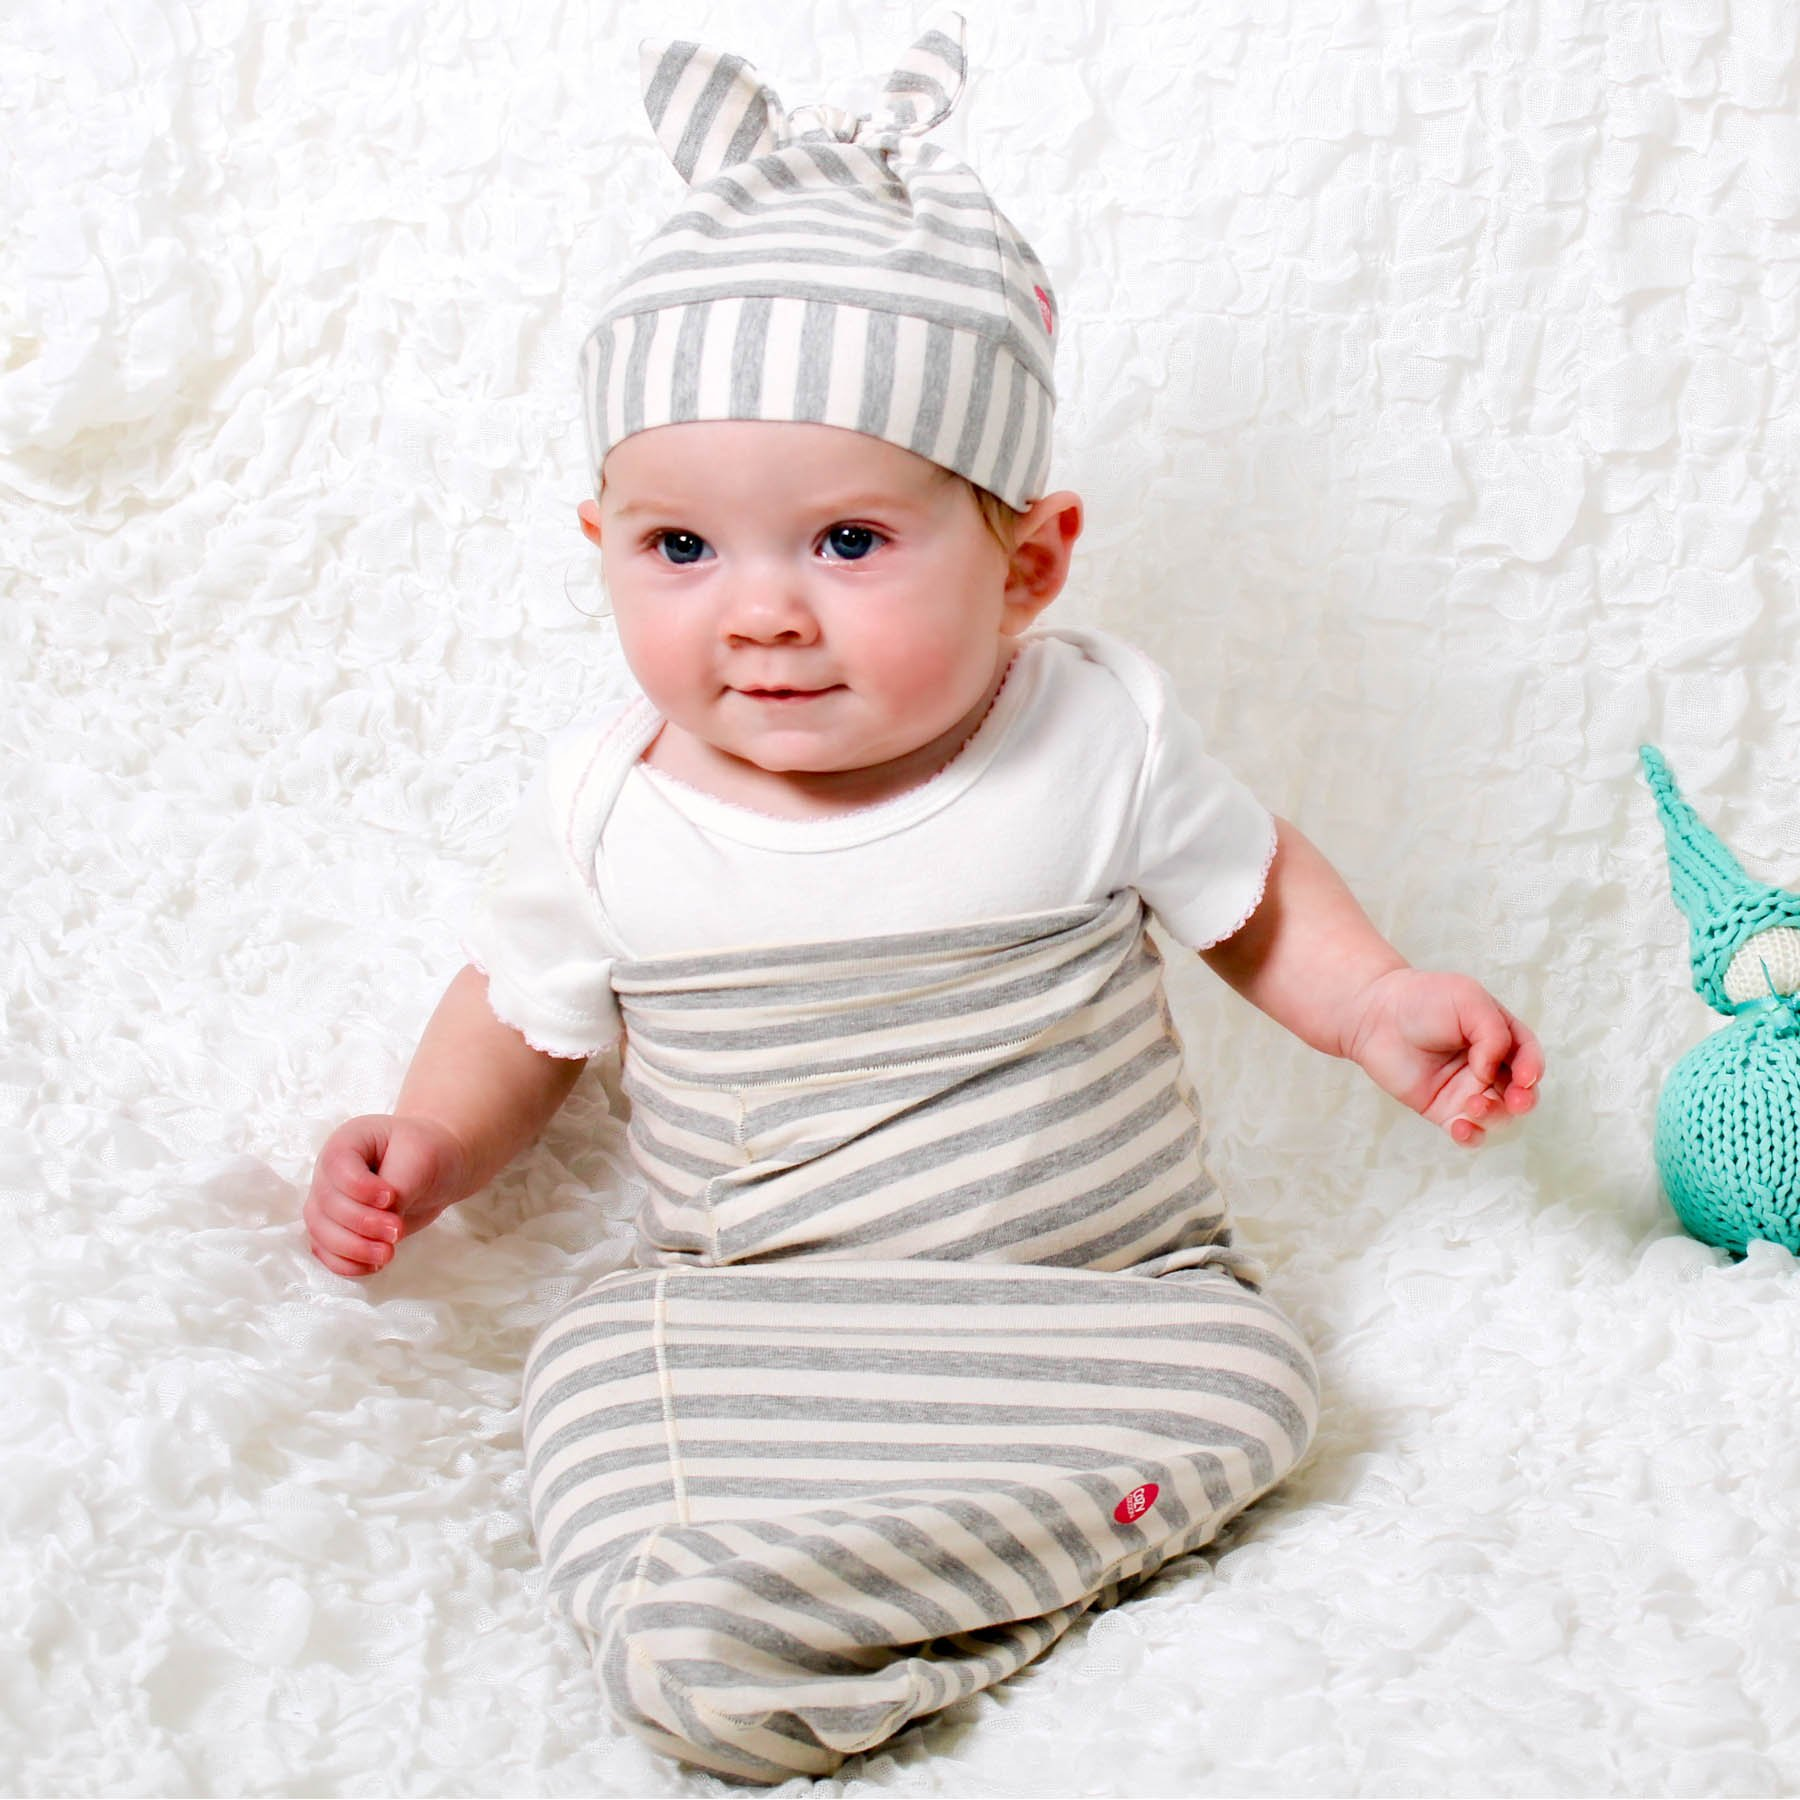 Cozy Cocoon Baby Cocoon Swaddle and Matching Hat, Gray Stripes, 0-3 months by Cozy Cocoon (Image #4)